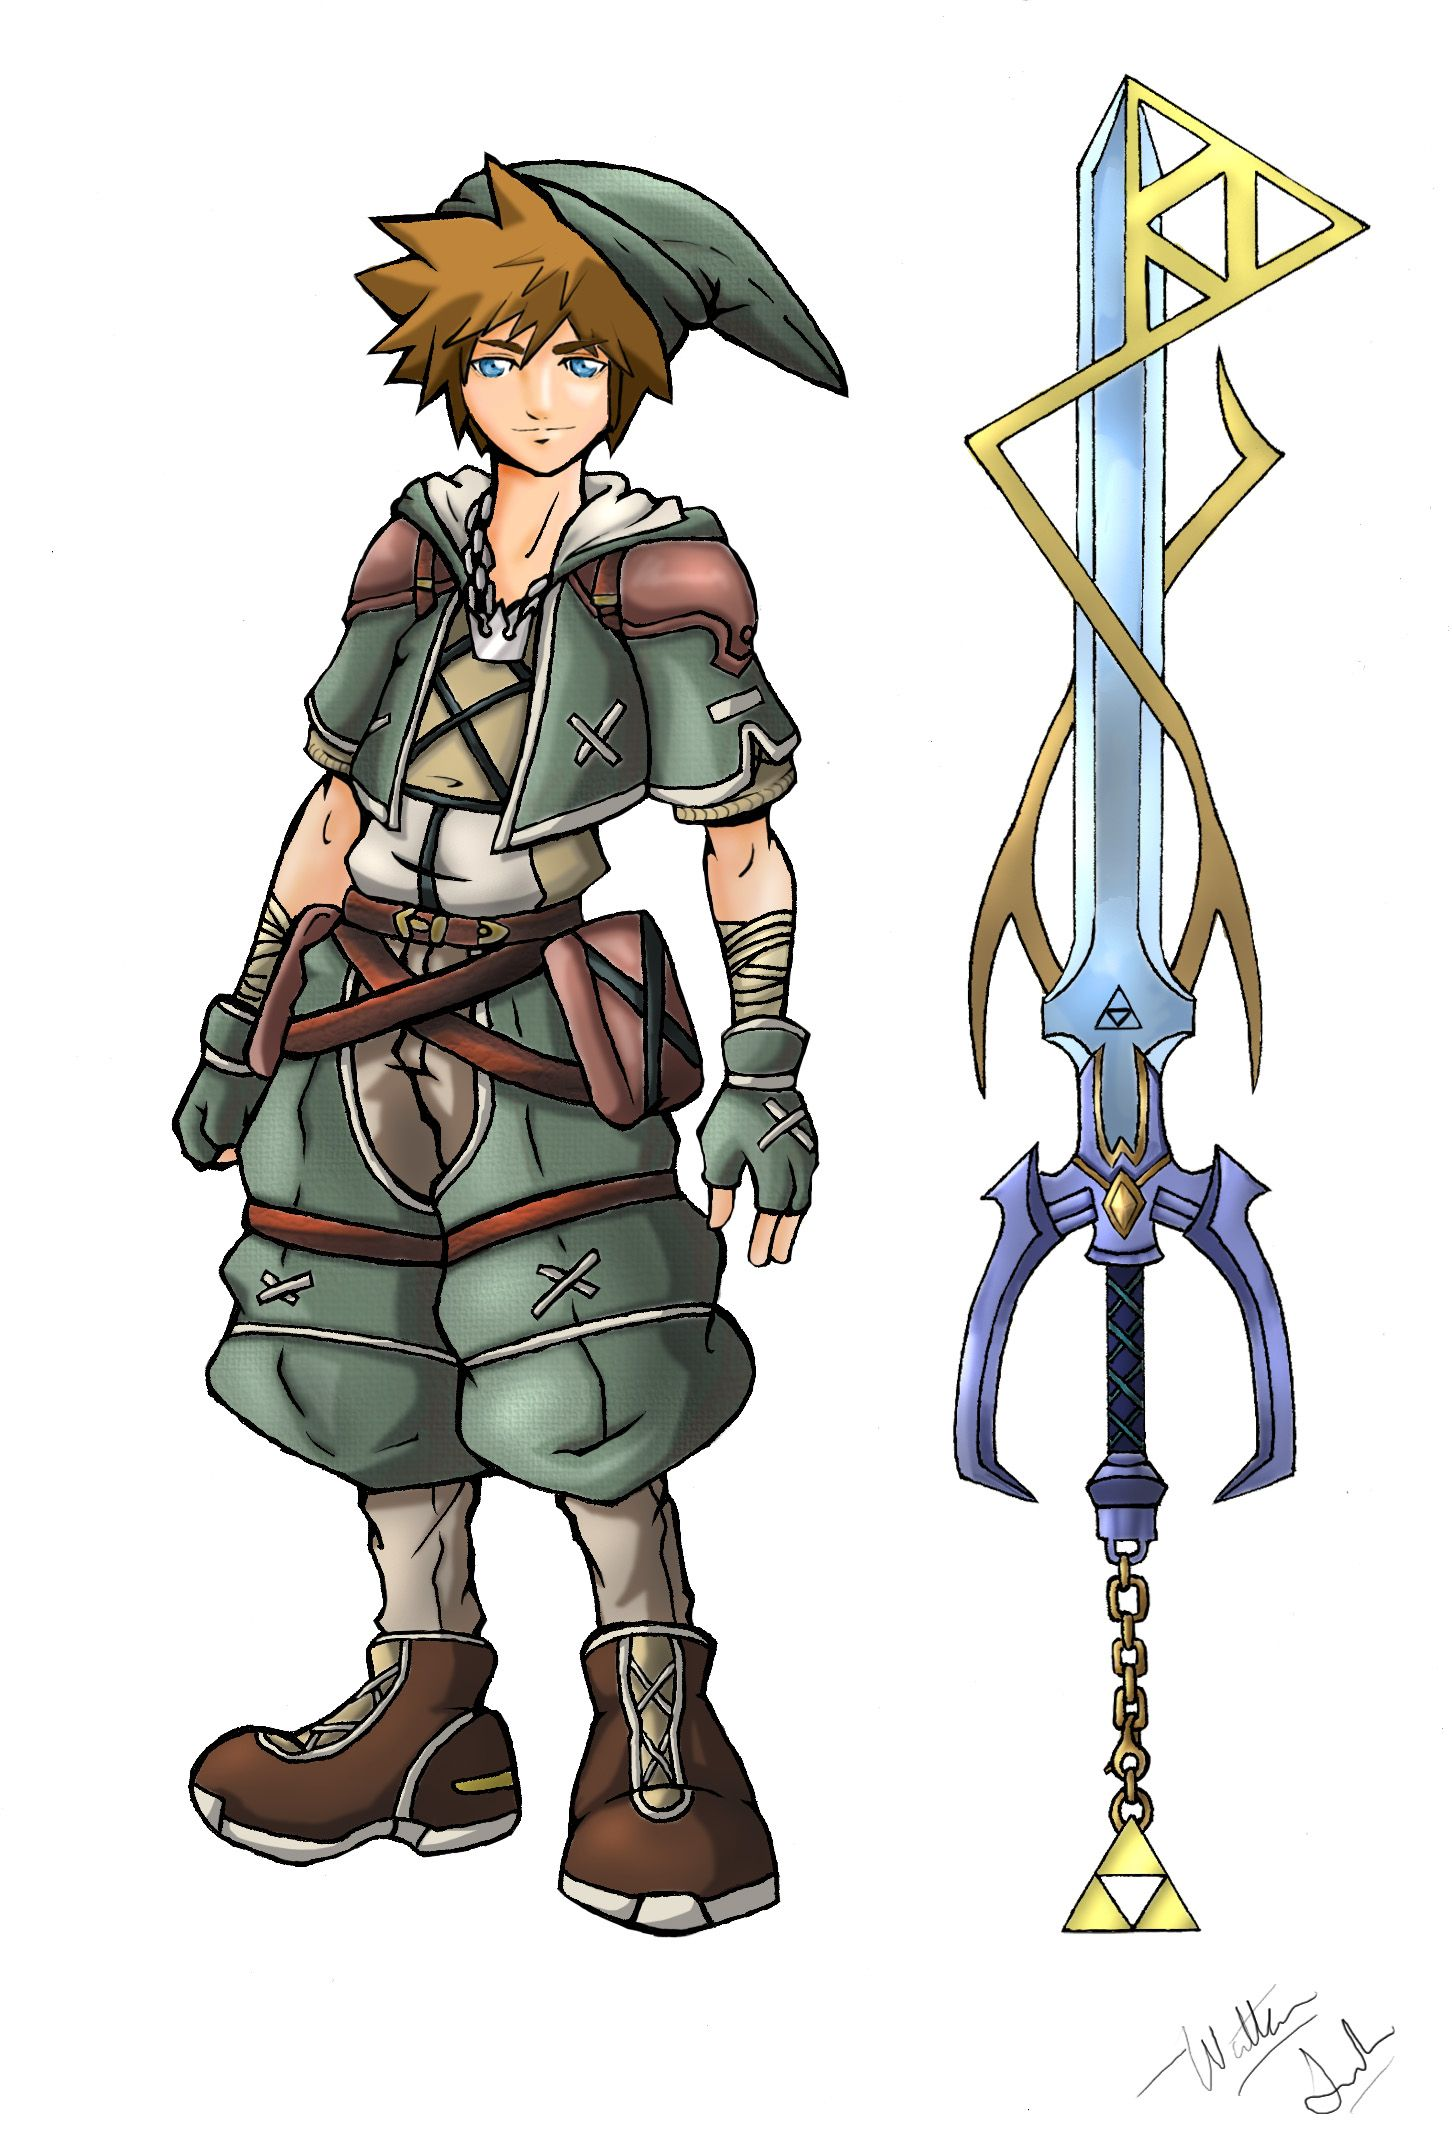 zelda kingdom hearts crossover art i may have not played the